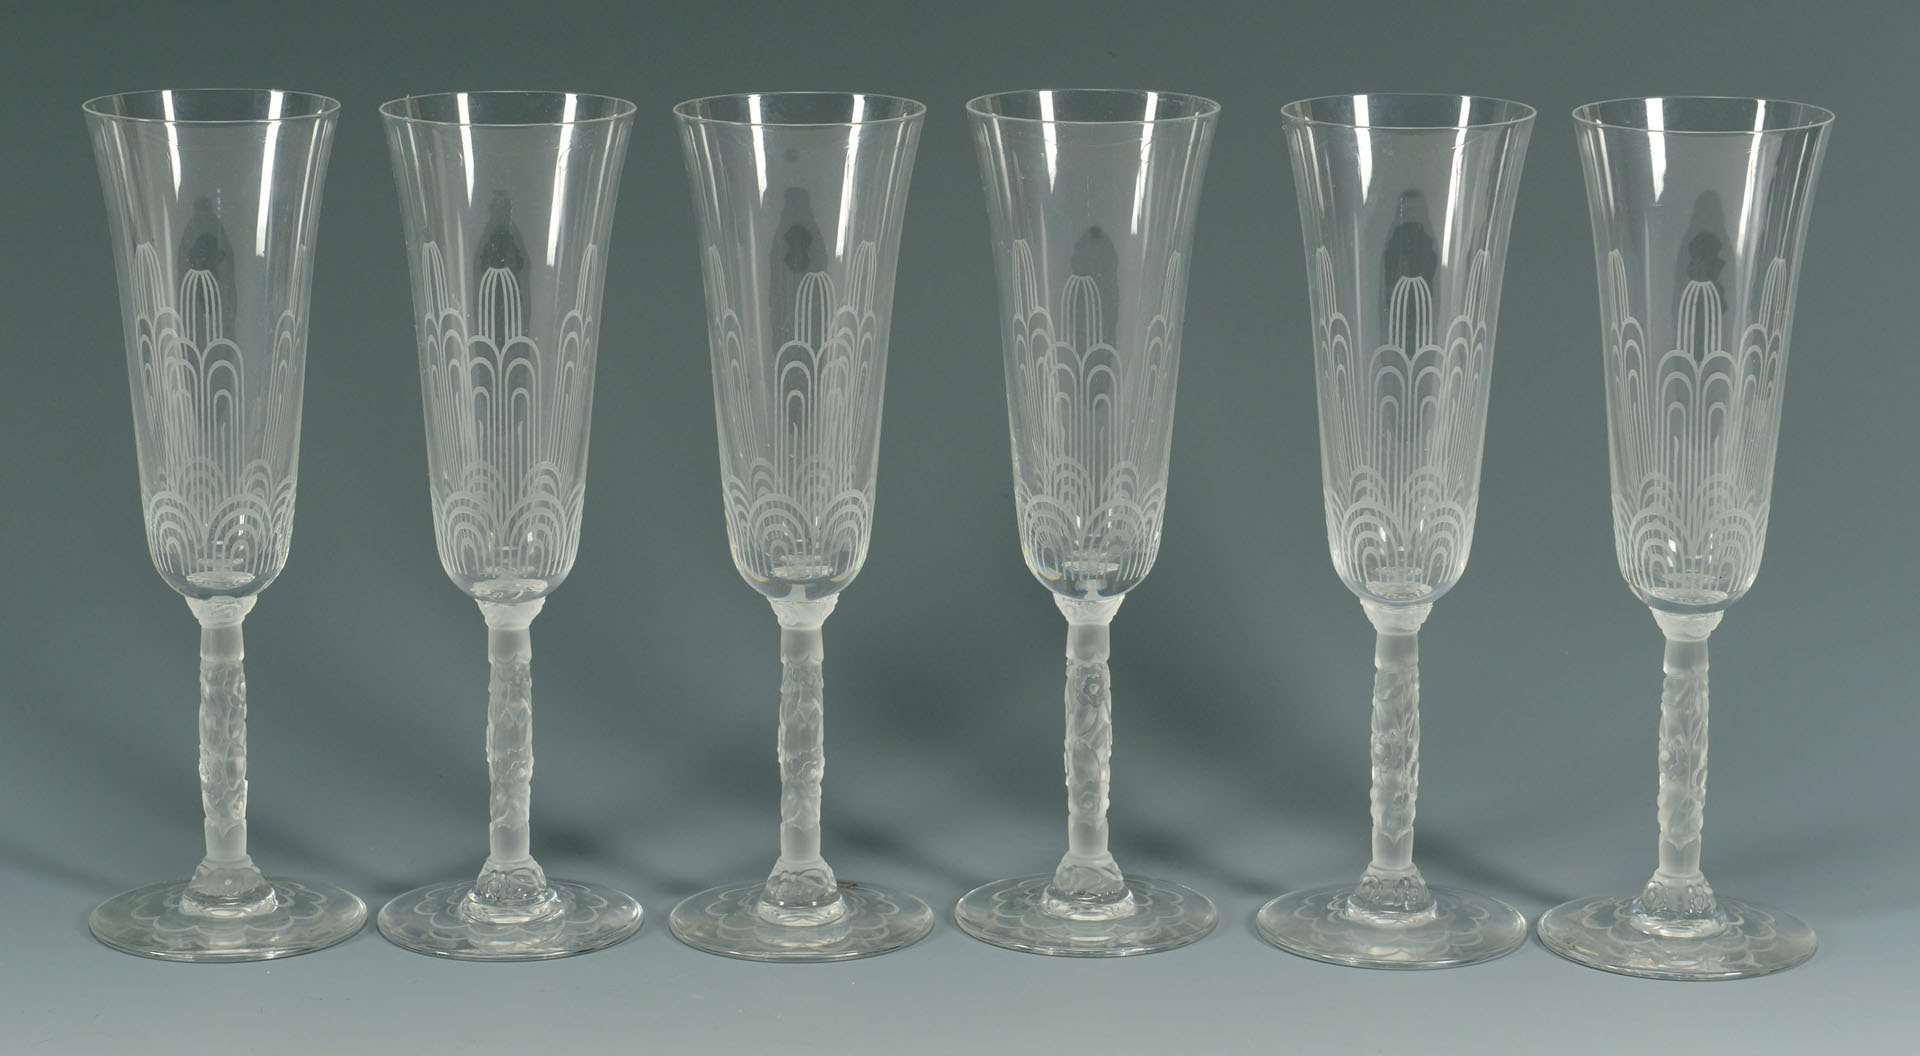 Lot 360: Set of 6 Baccarat Crystal Champagne Glasses